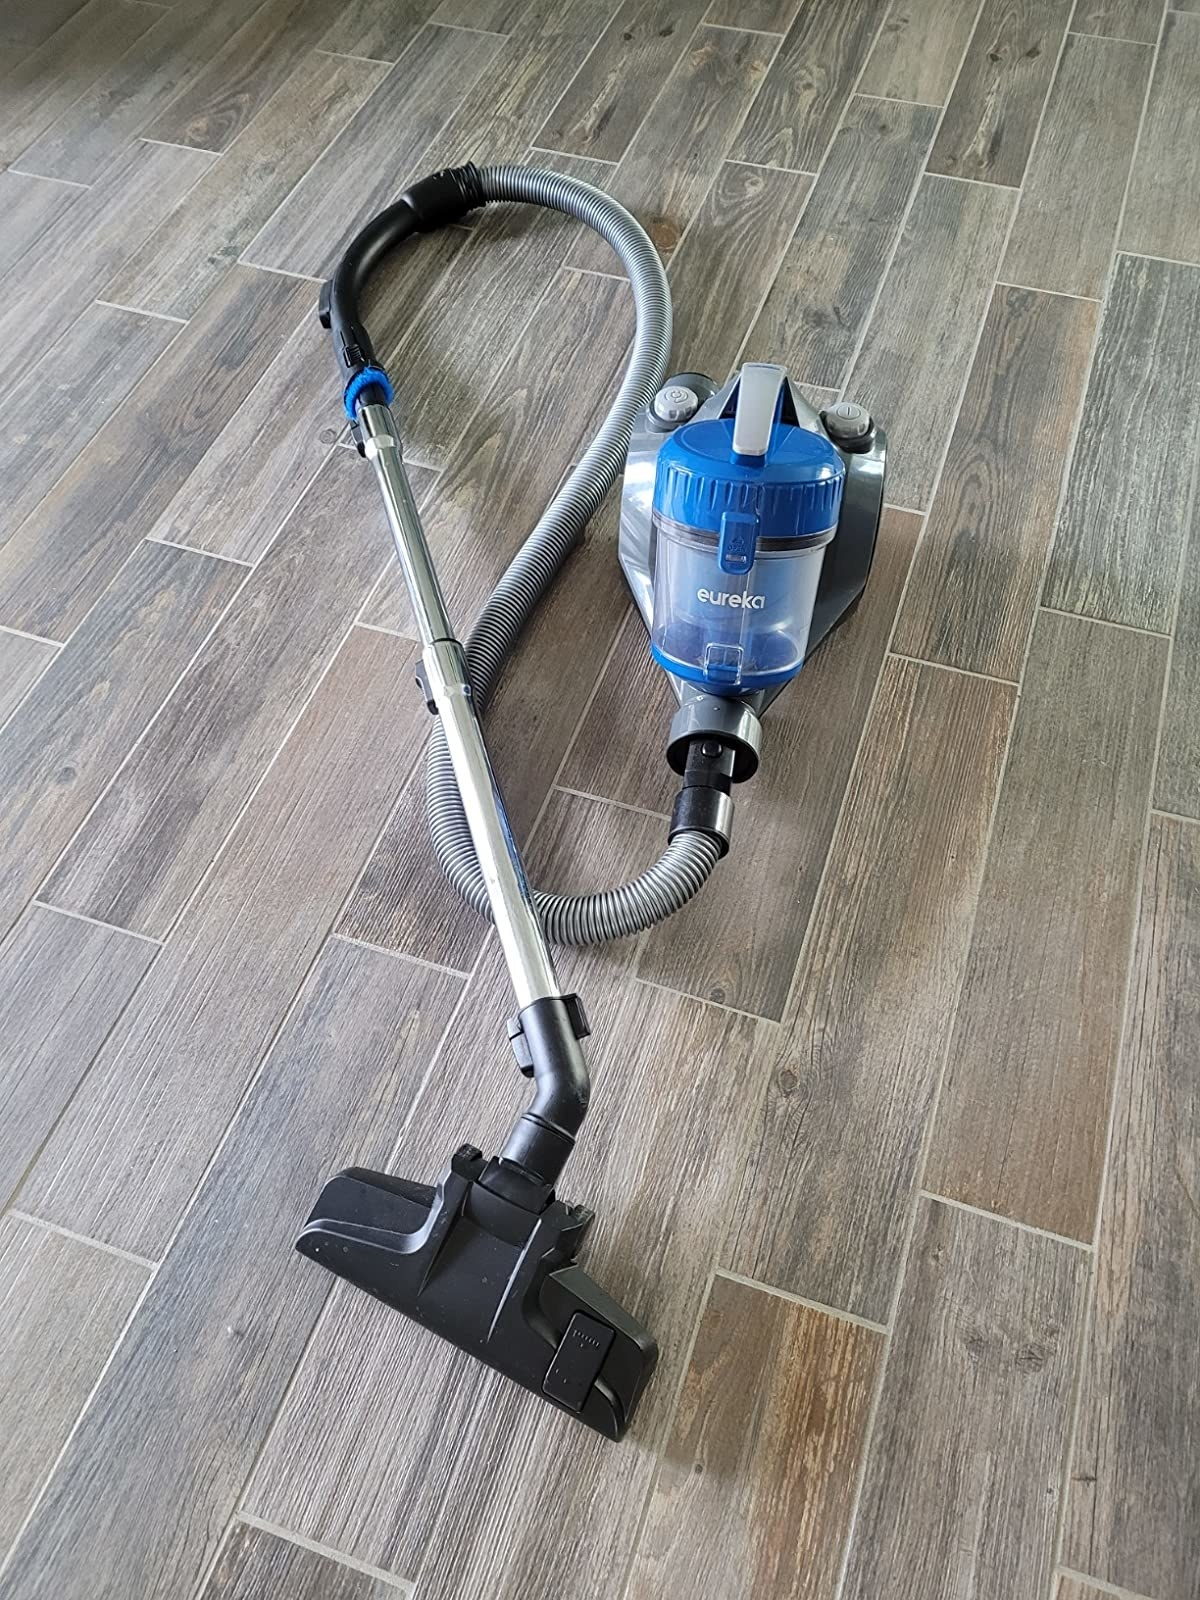 Blue and gray vacuum with metal and black accents